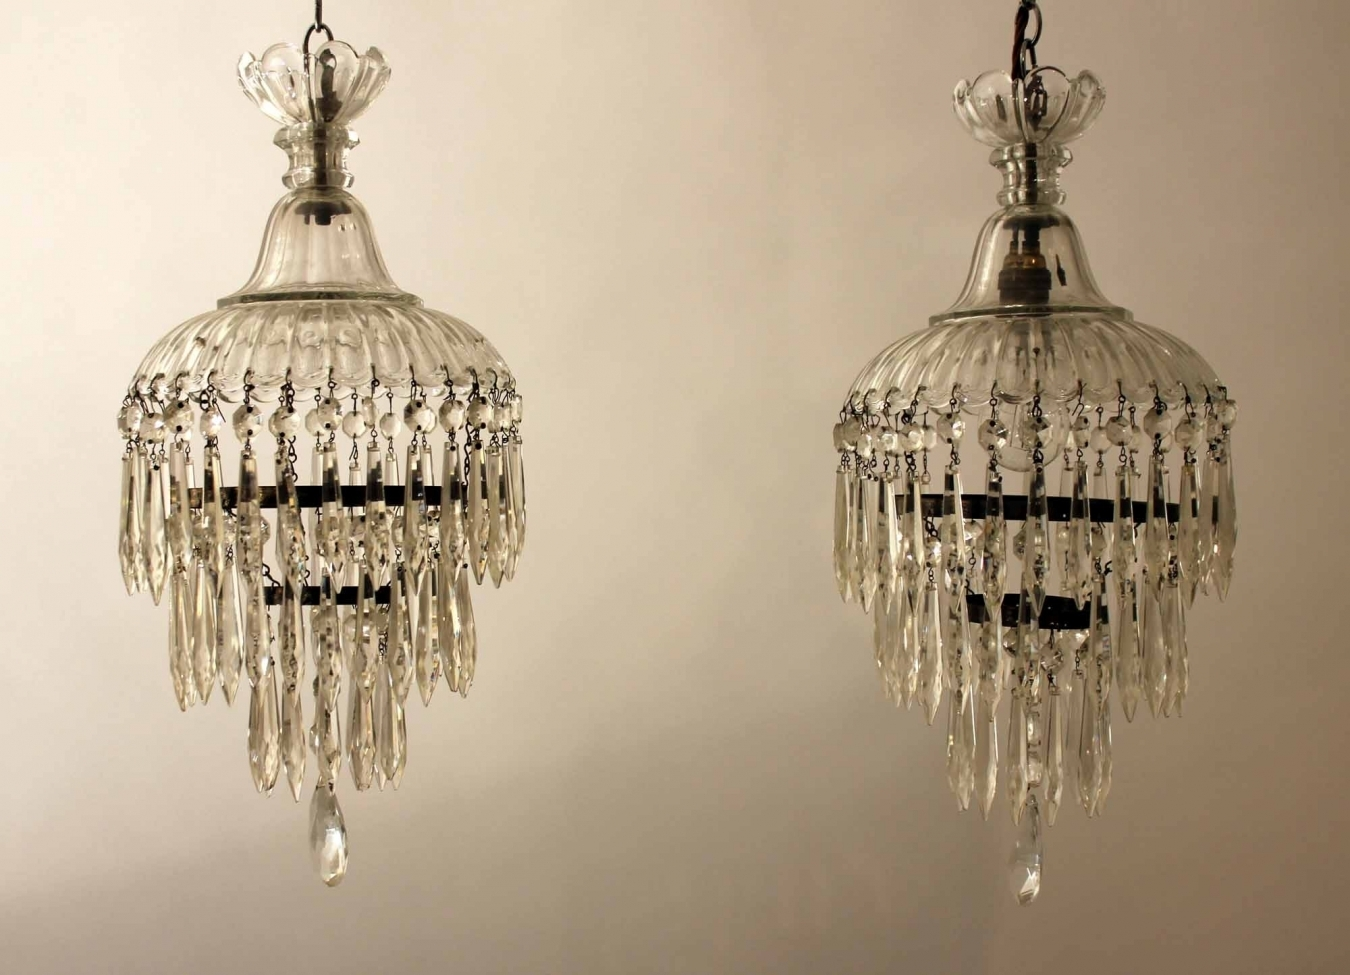 Pair Of Edwardian Chandeliers Trendfirst In Edwardian Chandeliers (View 4 of 12)